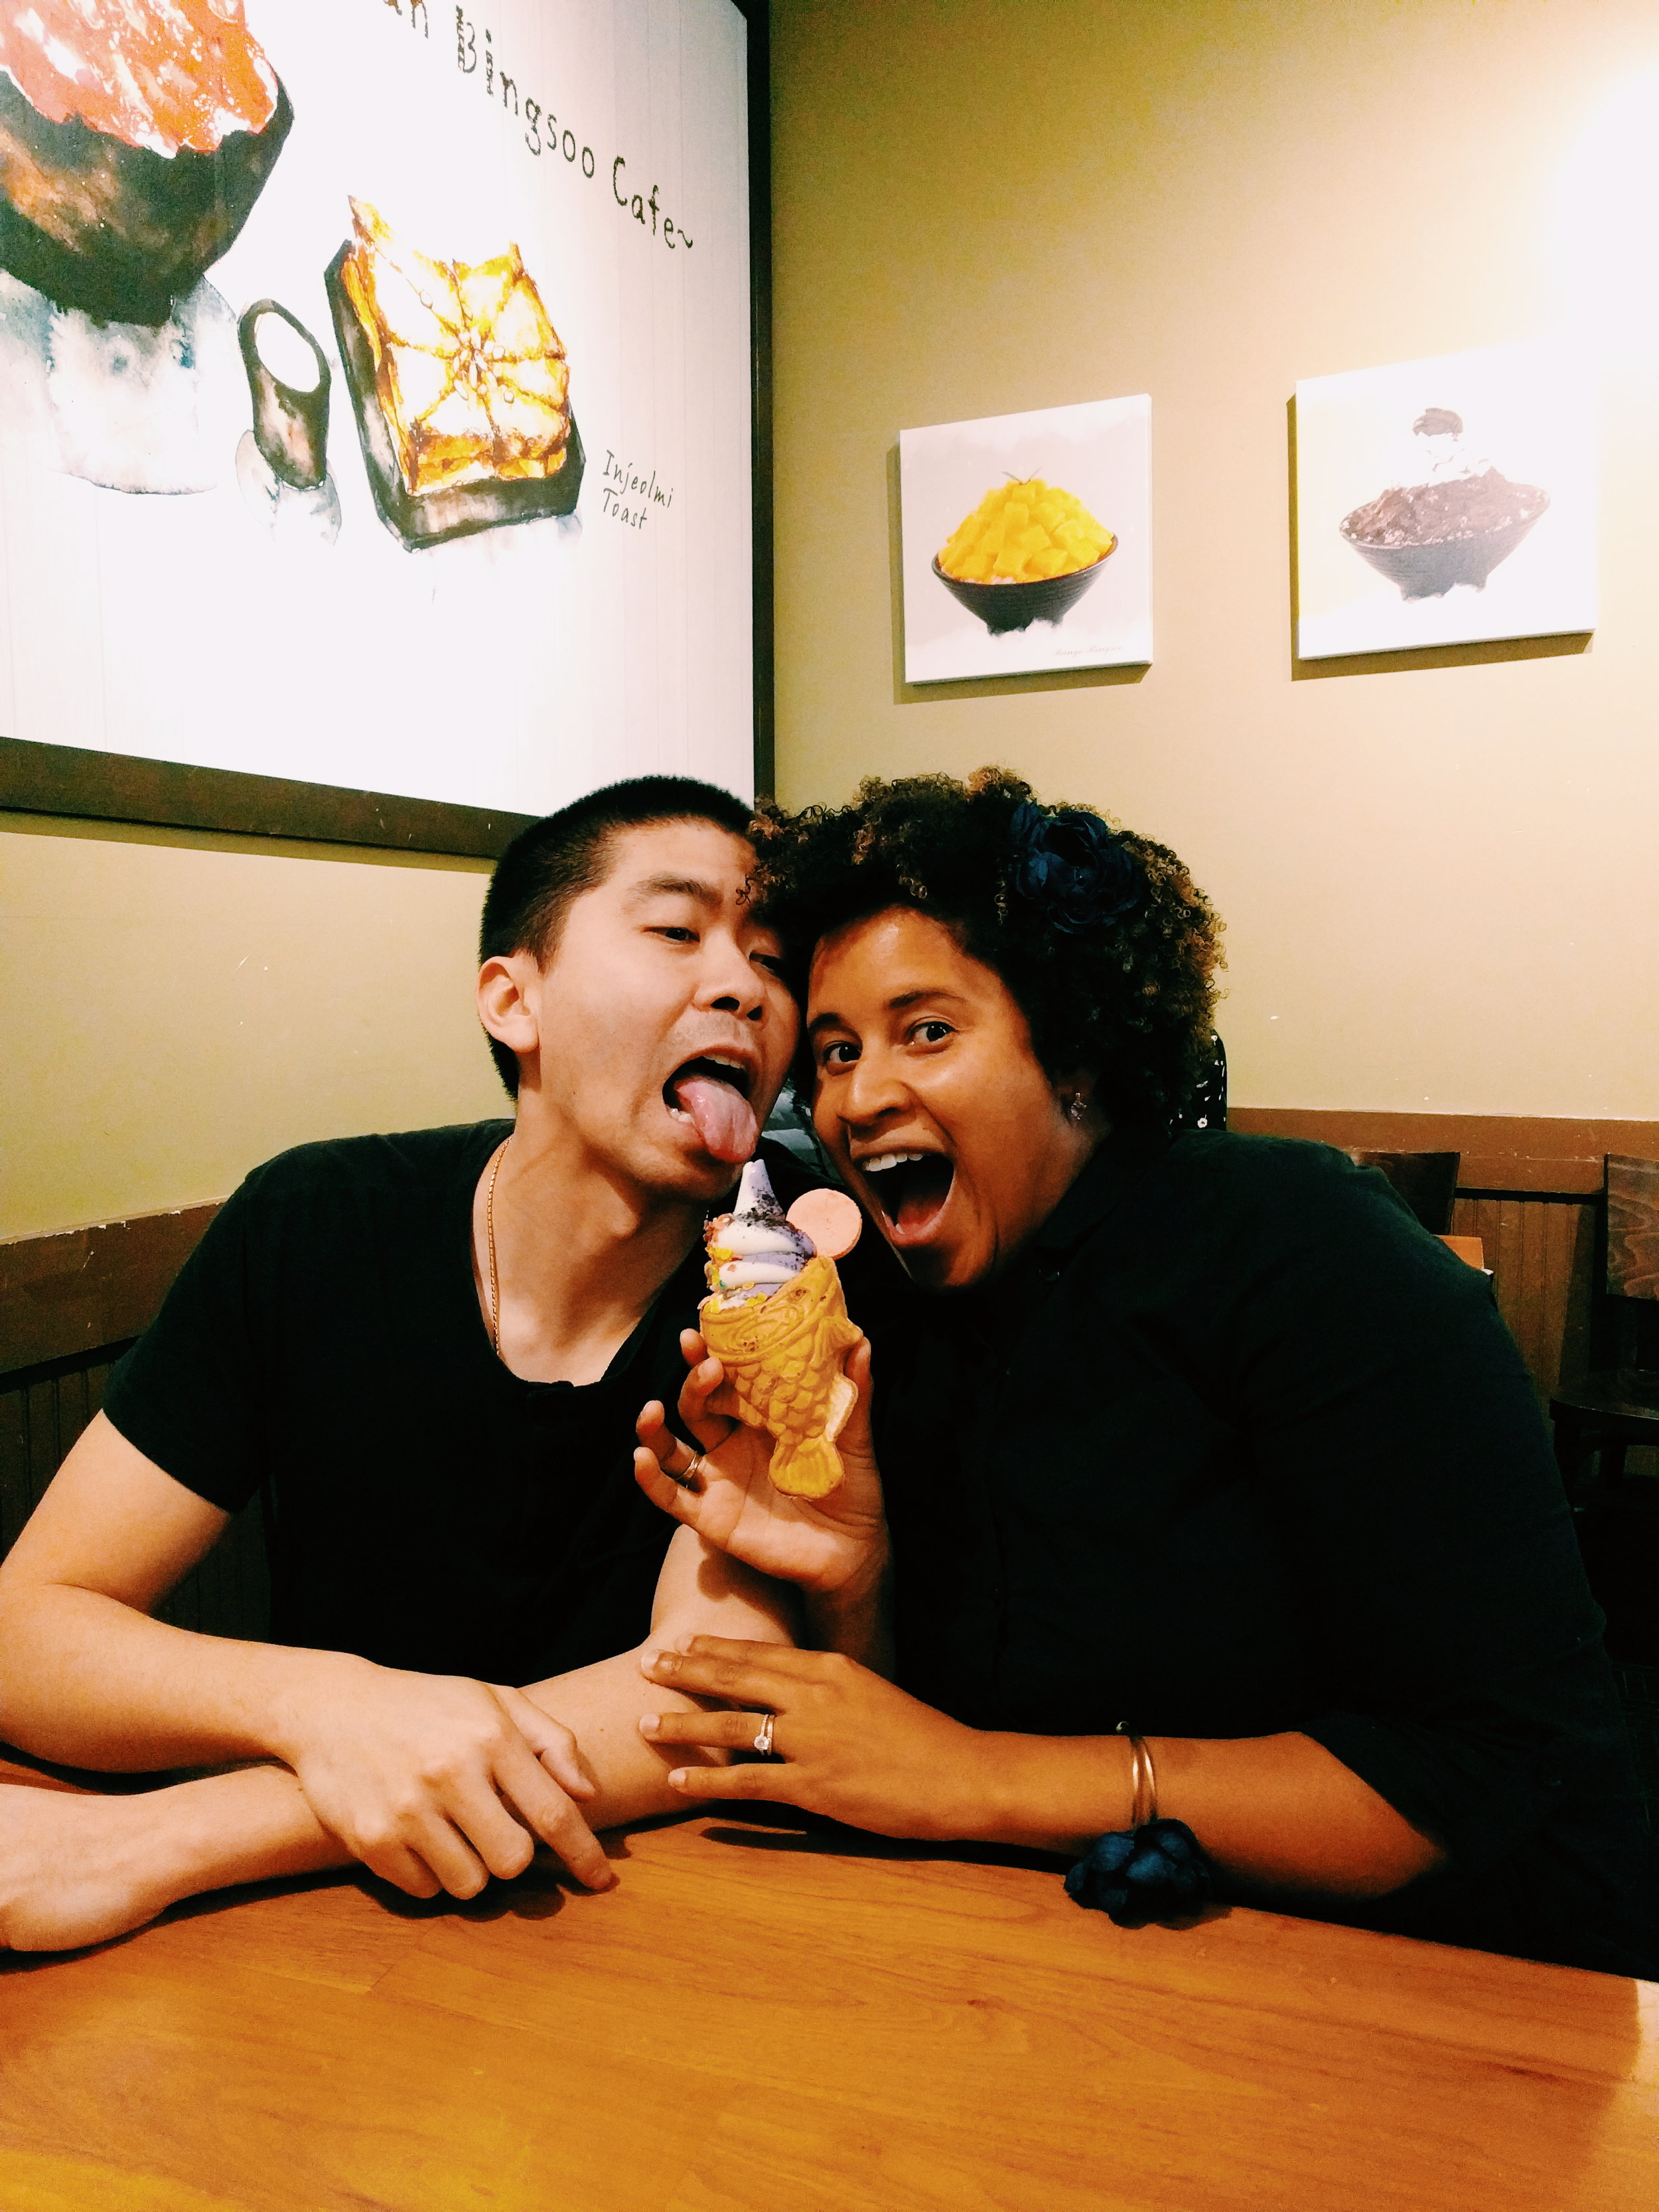 Welcome! - We're a fun loving couple hailing from the East Coast now based in Austin, TX! Our blog is a mix of everyday life, good eats, and fun travels!We're so happy you stopped by!Be sure to check us out on YouTube every Sunday and to stop by and say hi on social!-Mélissa & Kevin